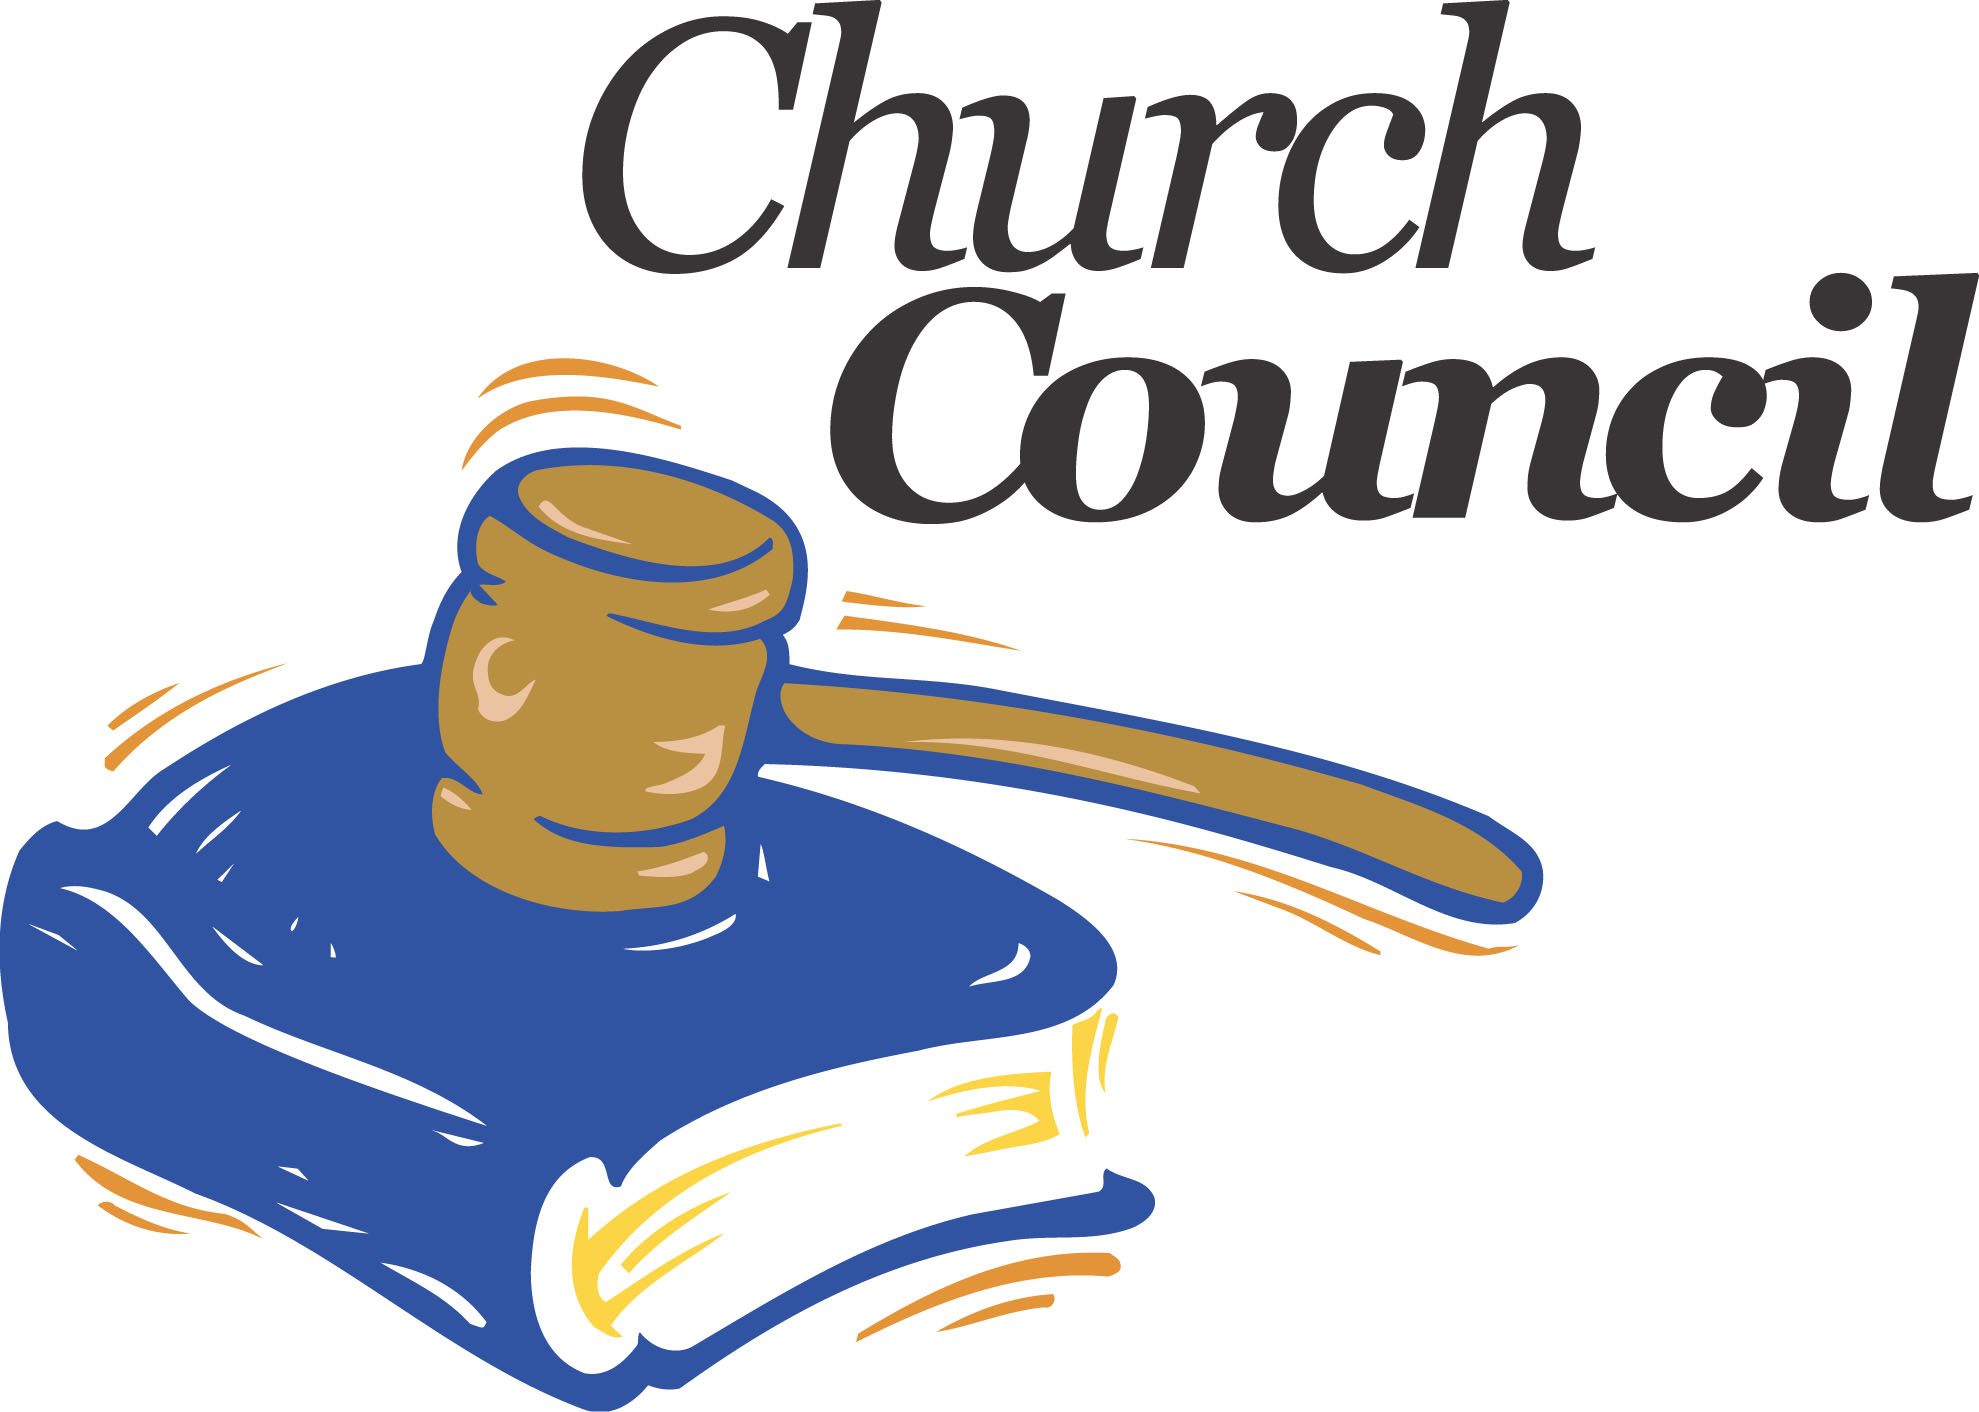 church council meeting clip art n2 free image rh pixy org